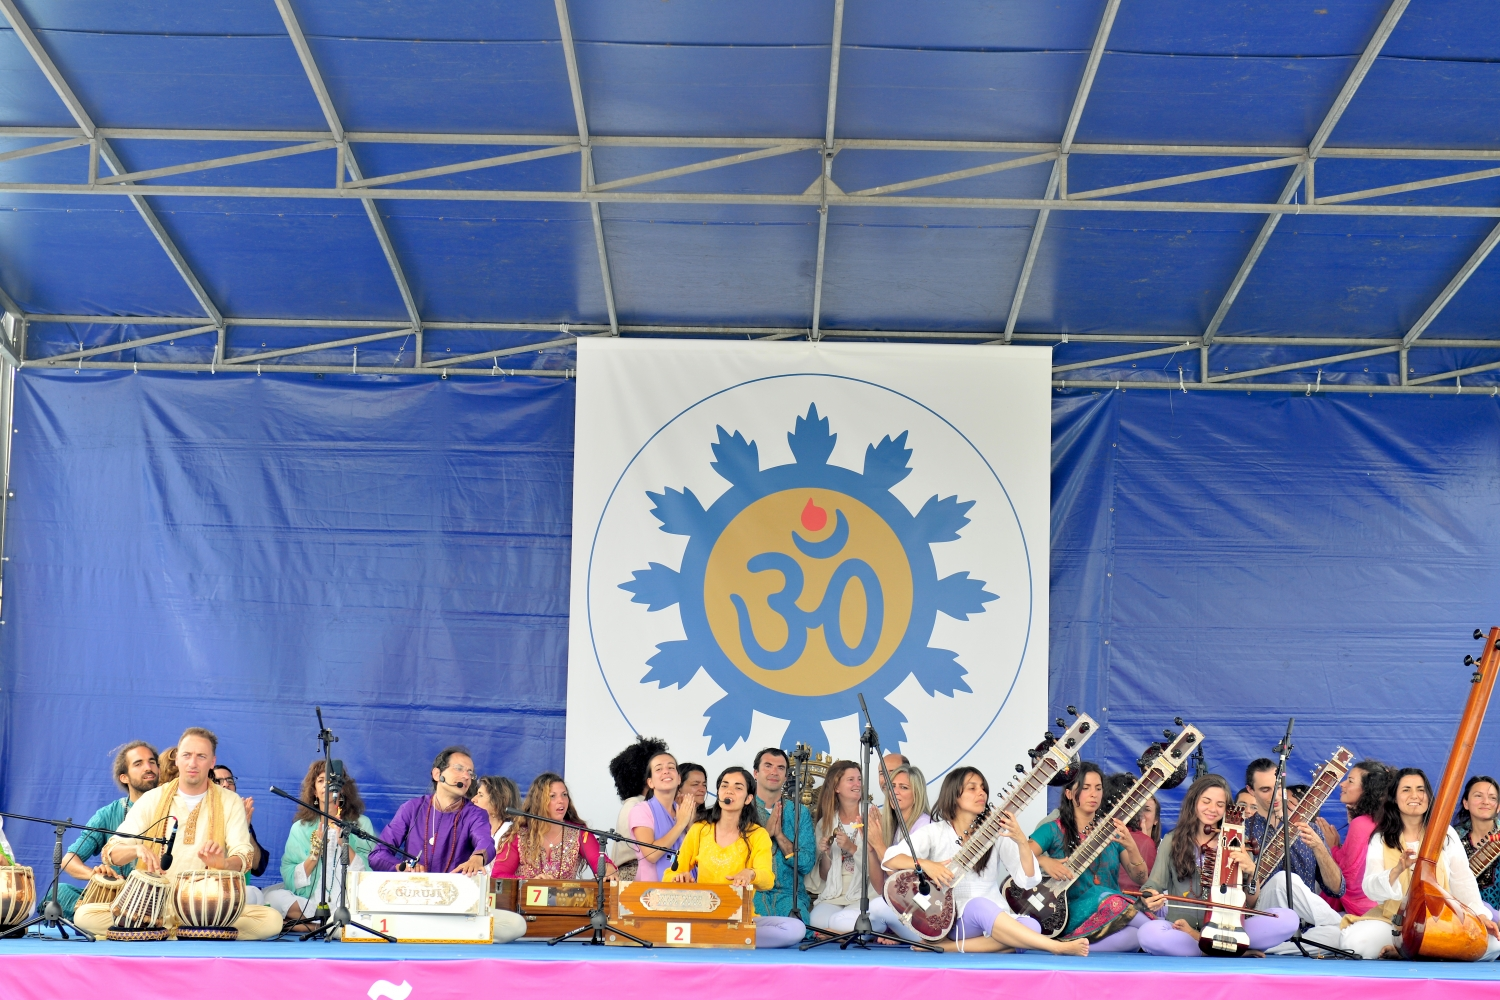 Commémoration de l'International Day of Yoga - IDY / Journée Internationale du Yoga - 2017 - Lisboa, Portugal